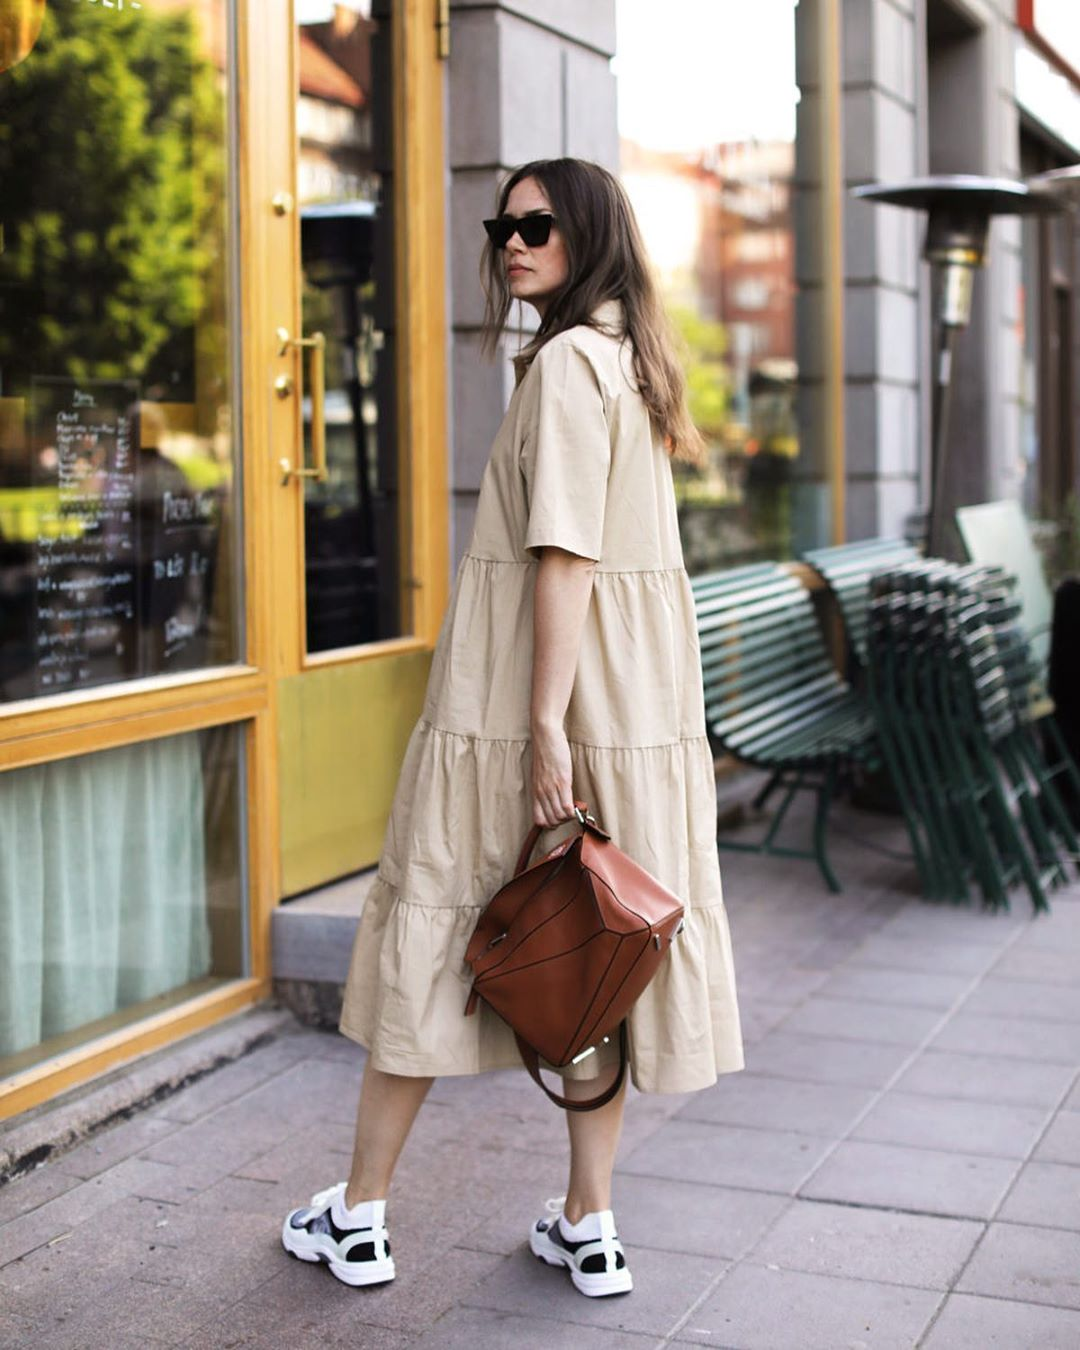 20 Summer Dresses to Wear With Sneakers